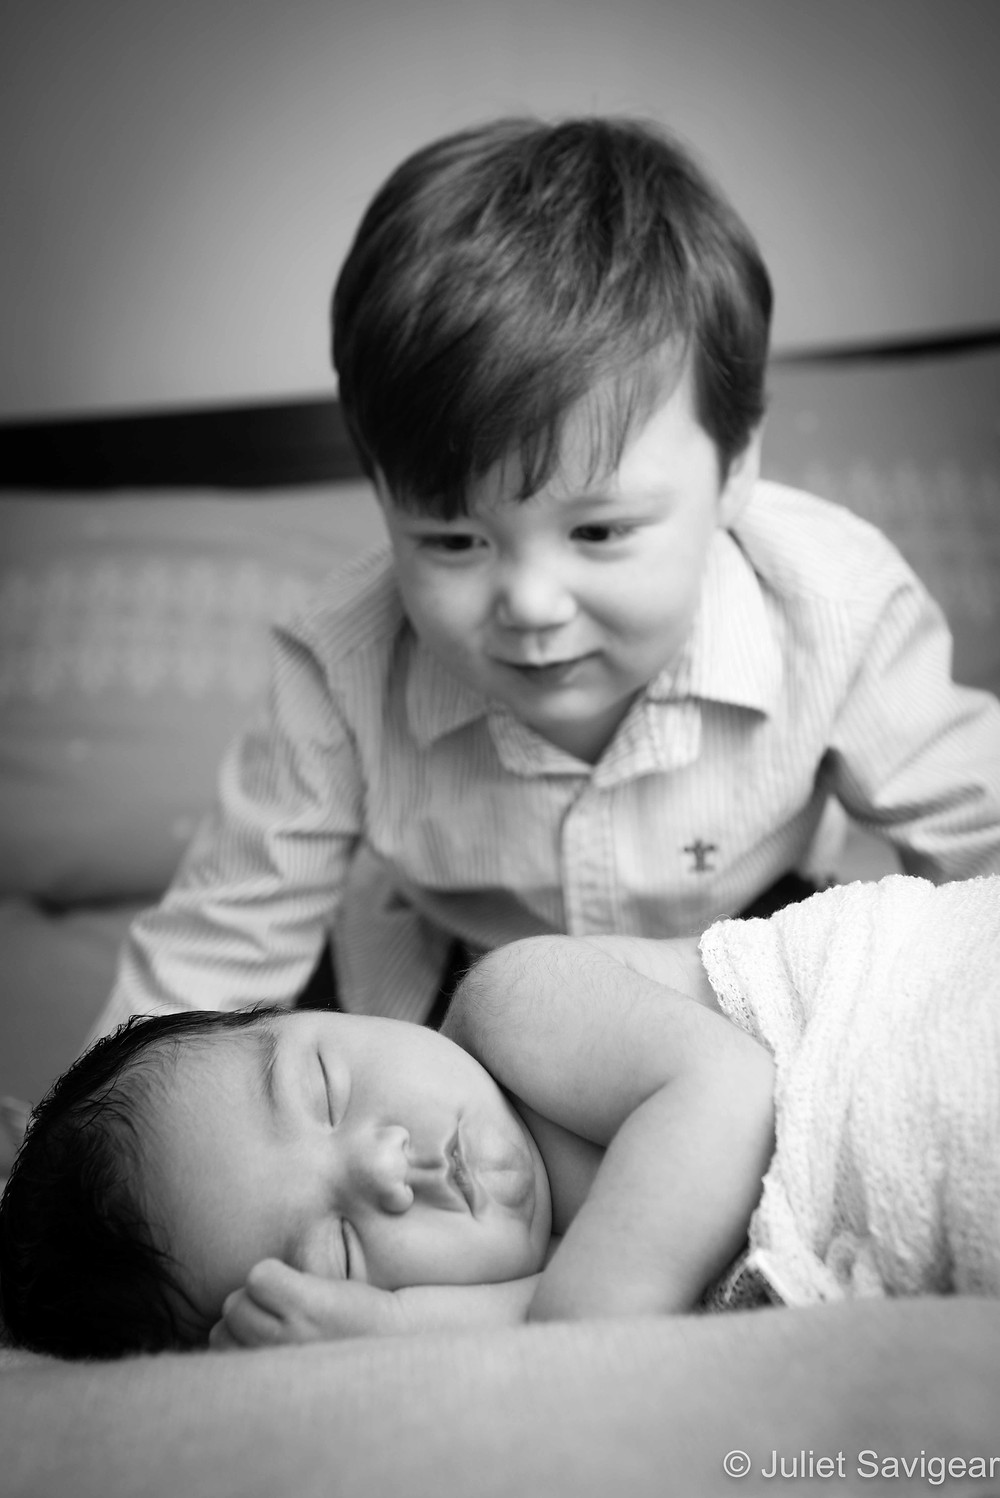 My Little Sister - Newborn Baby & Toddler Photography, London